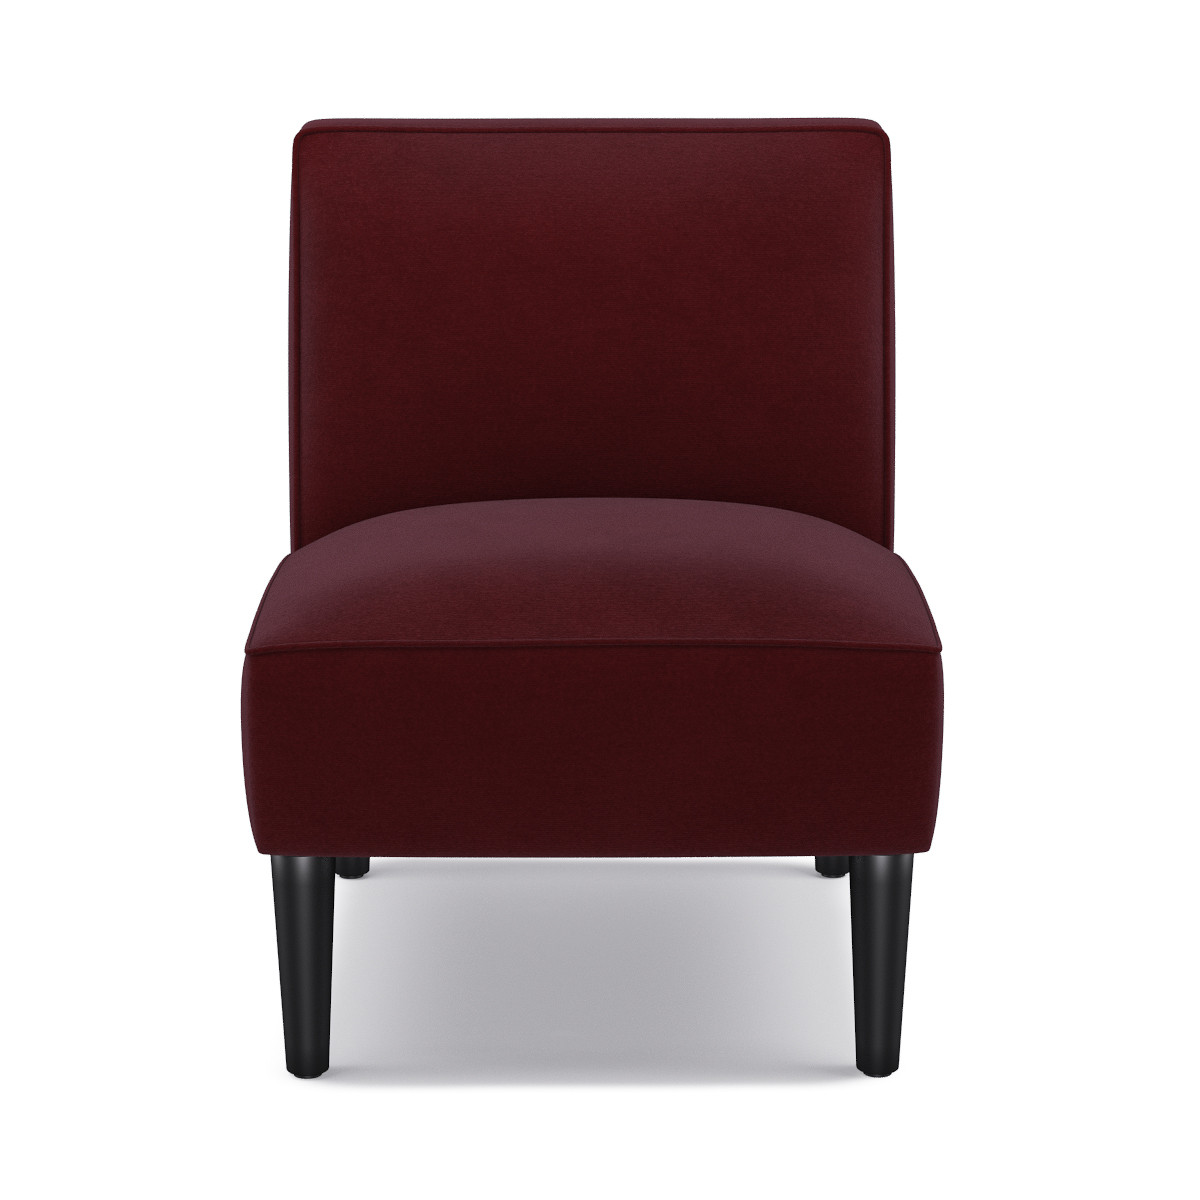 Tremendous Slipper Chair Bordeaux Velvet Ibusinesslaw Wood Chair Design Ideas Ibusinesslaworg